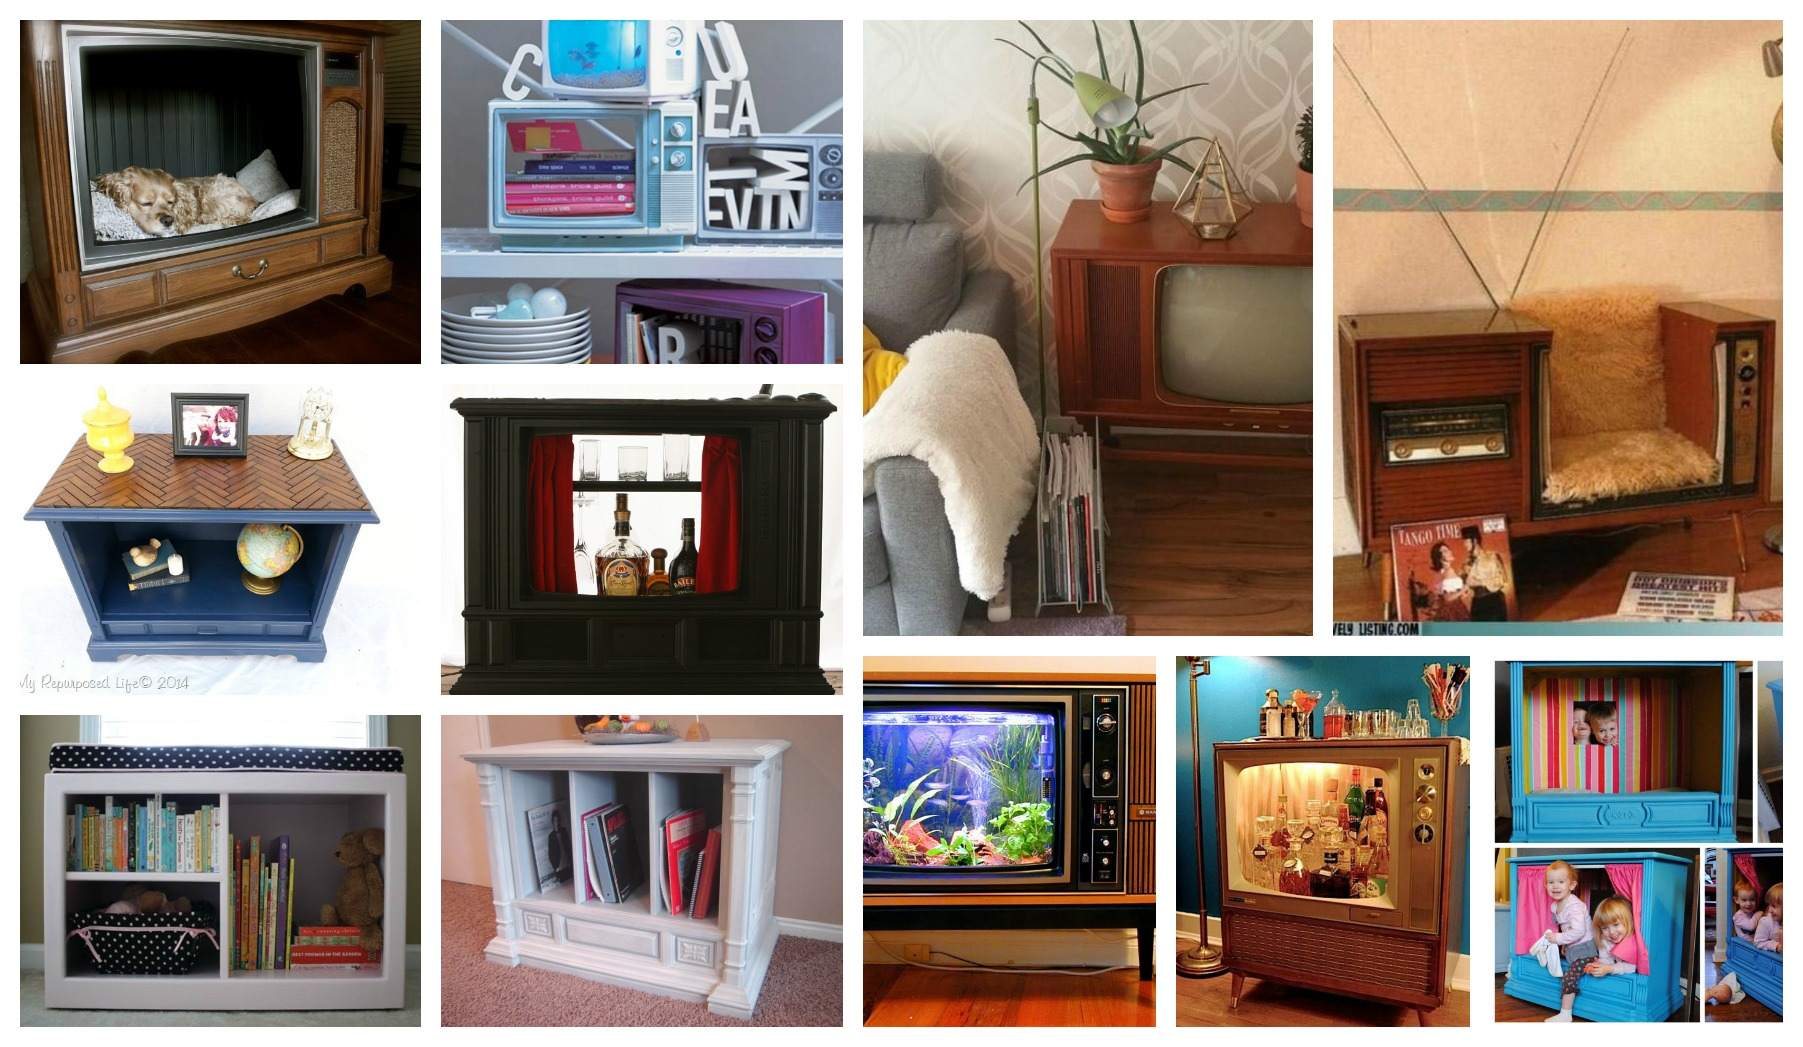 How To Reuse The Old TV And TV Console In Fantastic Ways